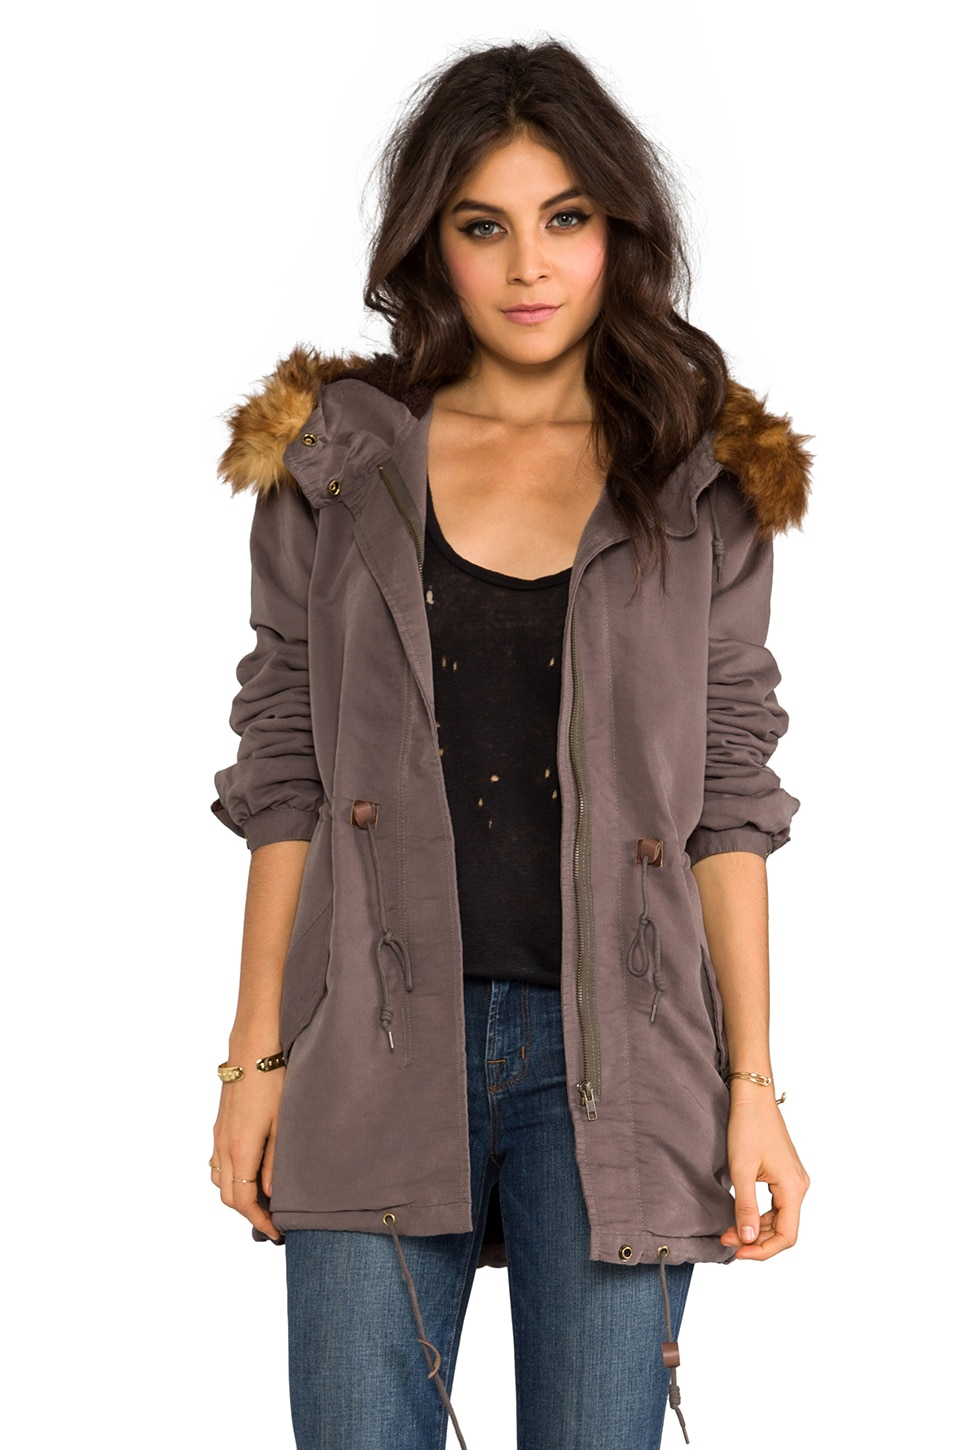 Obey Knightsbridge Military Jacket with Faux Fur Trim in Army